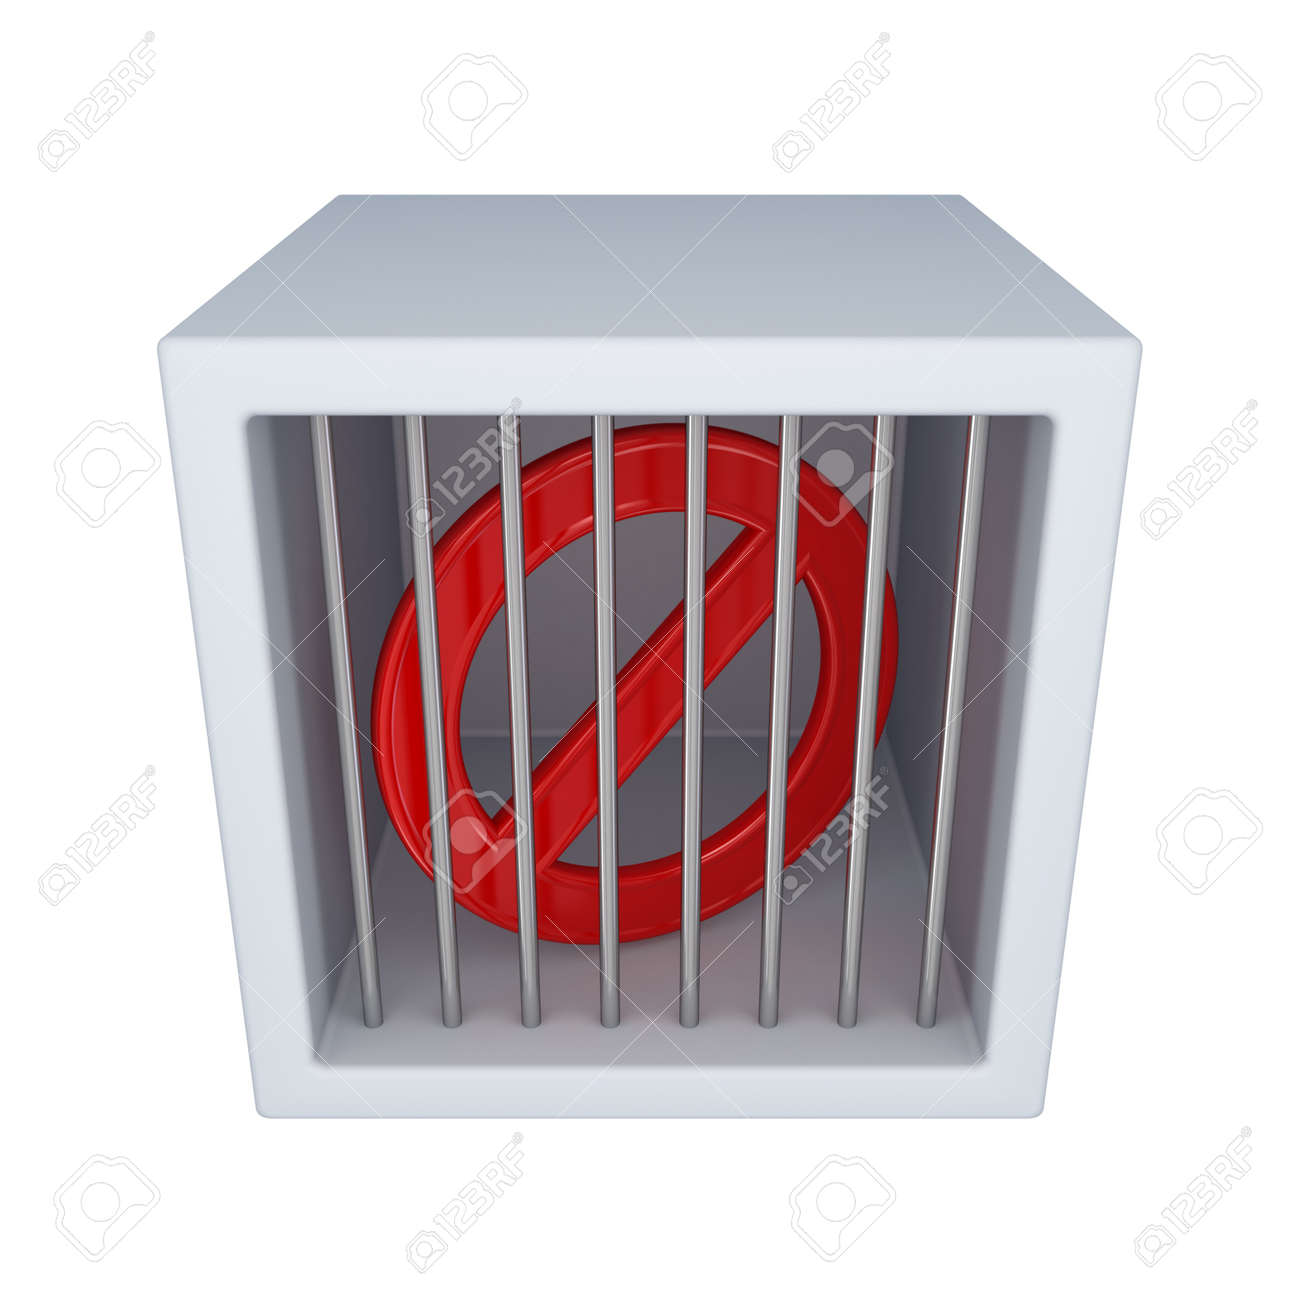 Red stop sign in a jail.Isolated on white background.3d rendered. Stock Photo - 12171243